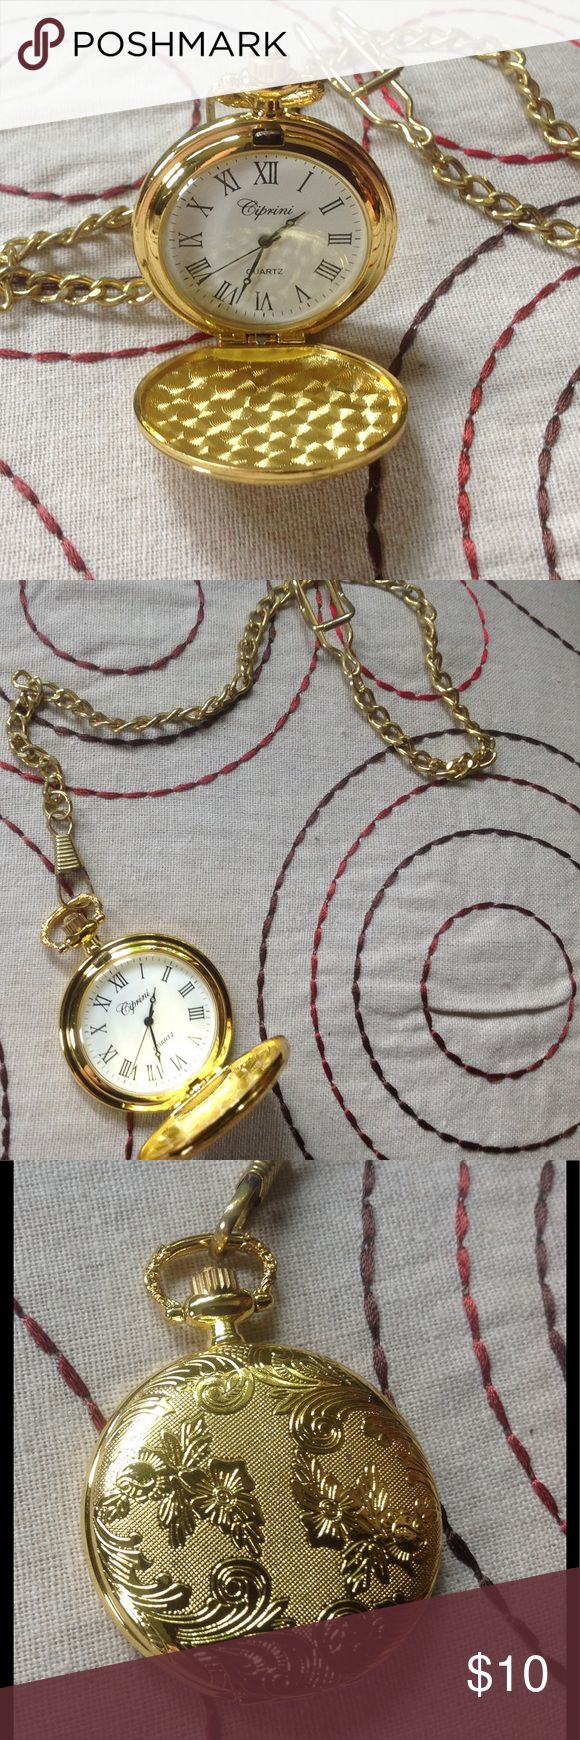 ⏱⏱ Fashion Quartz Pocket Watch ⏱⏱ Gold tone pocket watch is a unique accessory. Comes with chain which is not as shiny bright as the watch.  The closed watch is identical on the front and back and could be a great pendant. Watch is 2.5 inches in diameter and needs a new battery. Jewelry